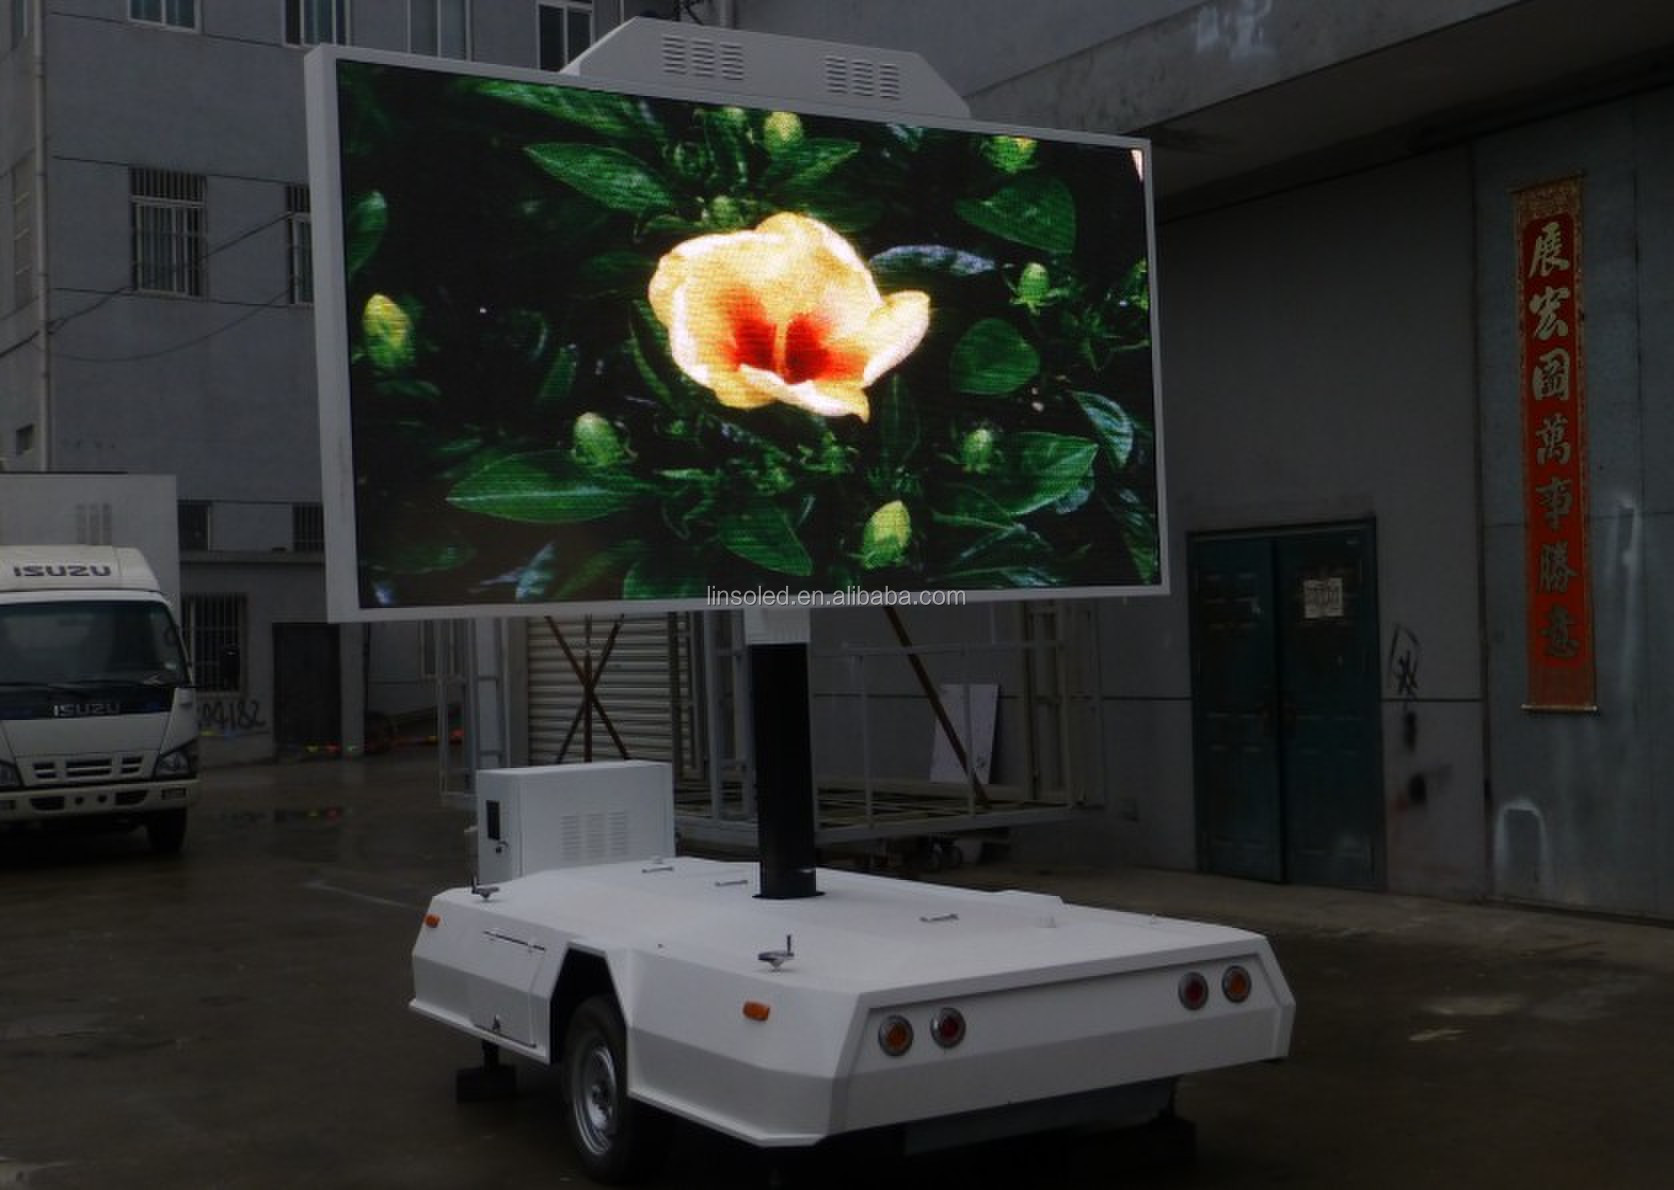 Shenzhen Linso Led Display Vehicle Mobile Advertising Led